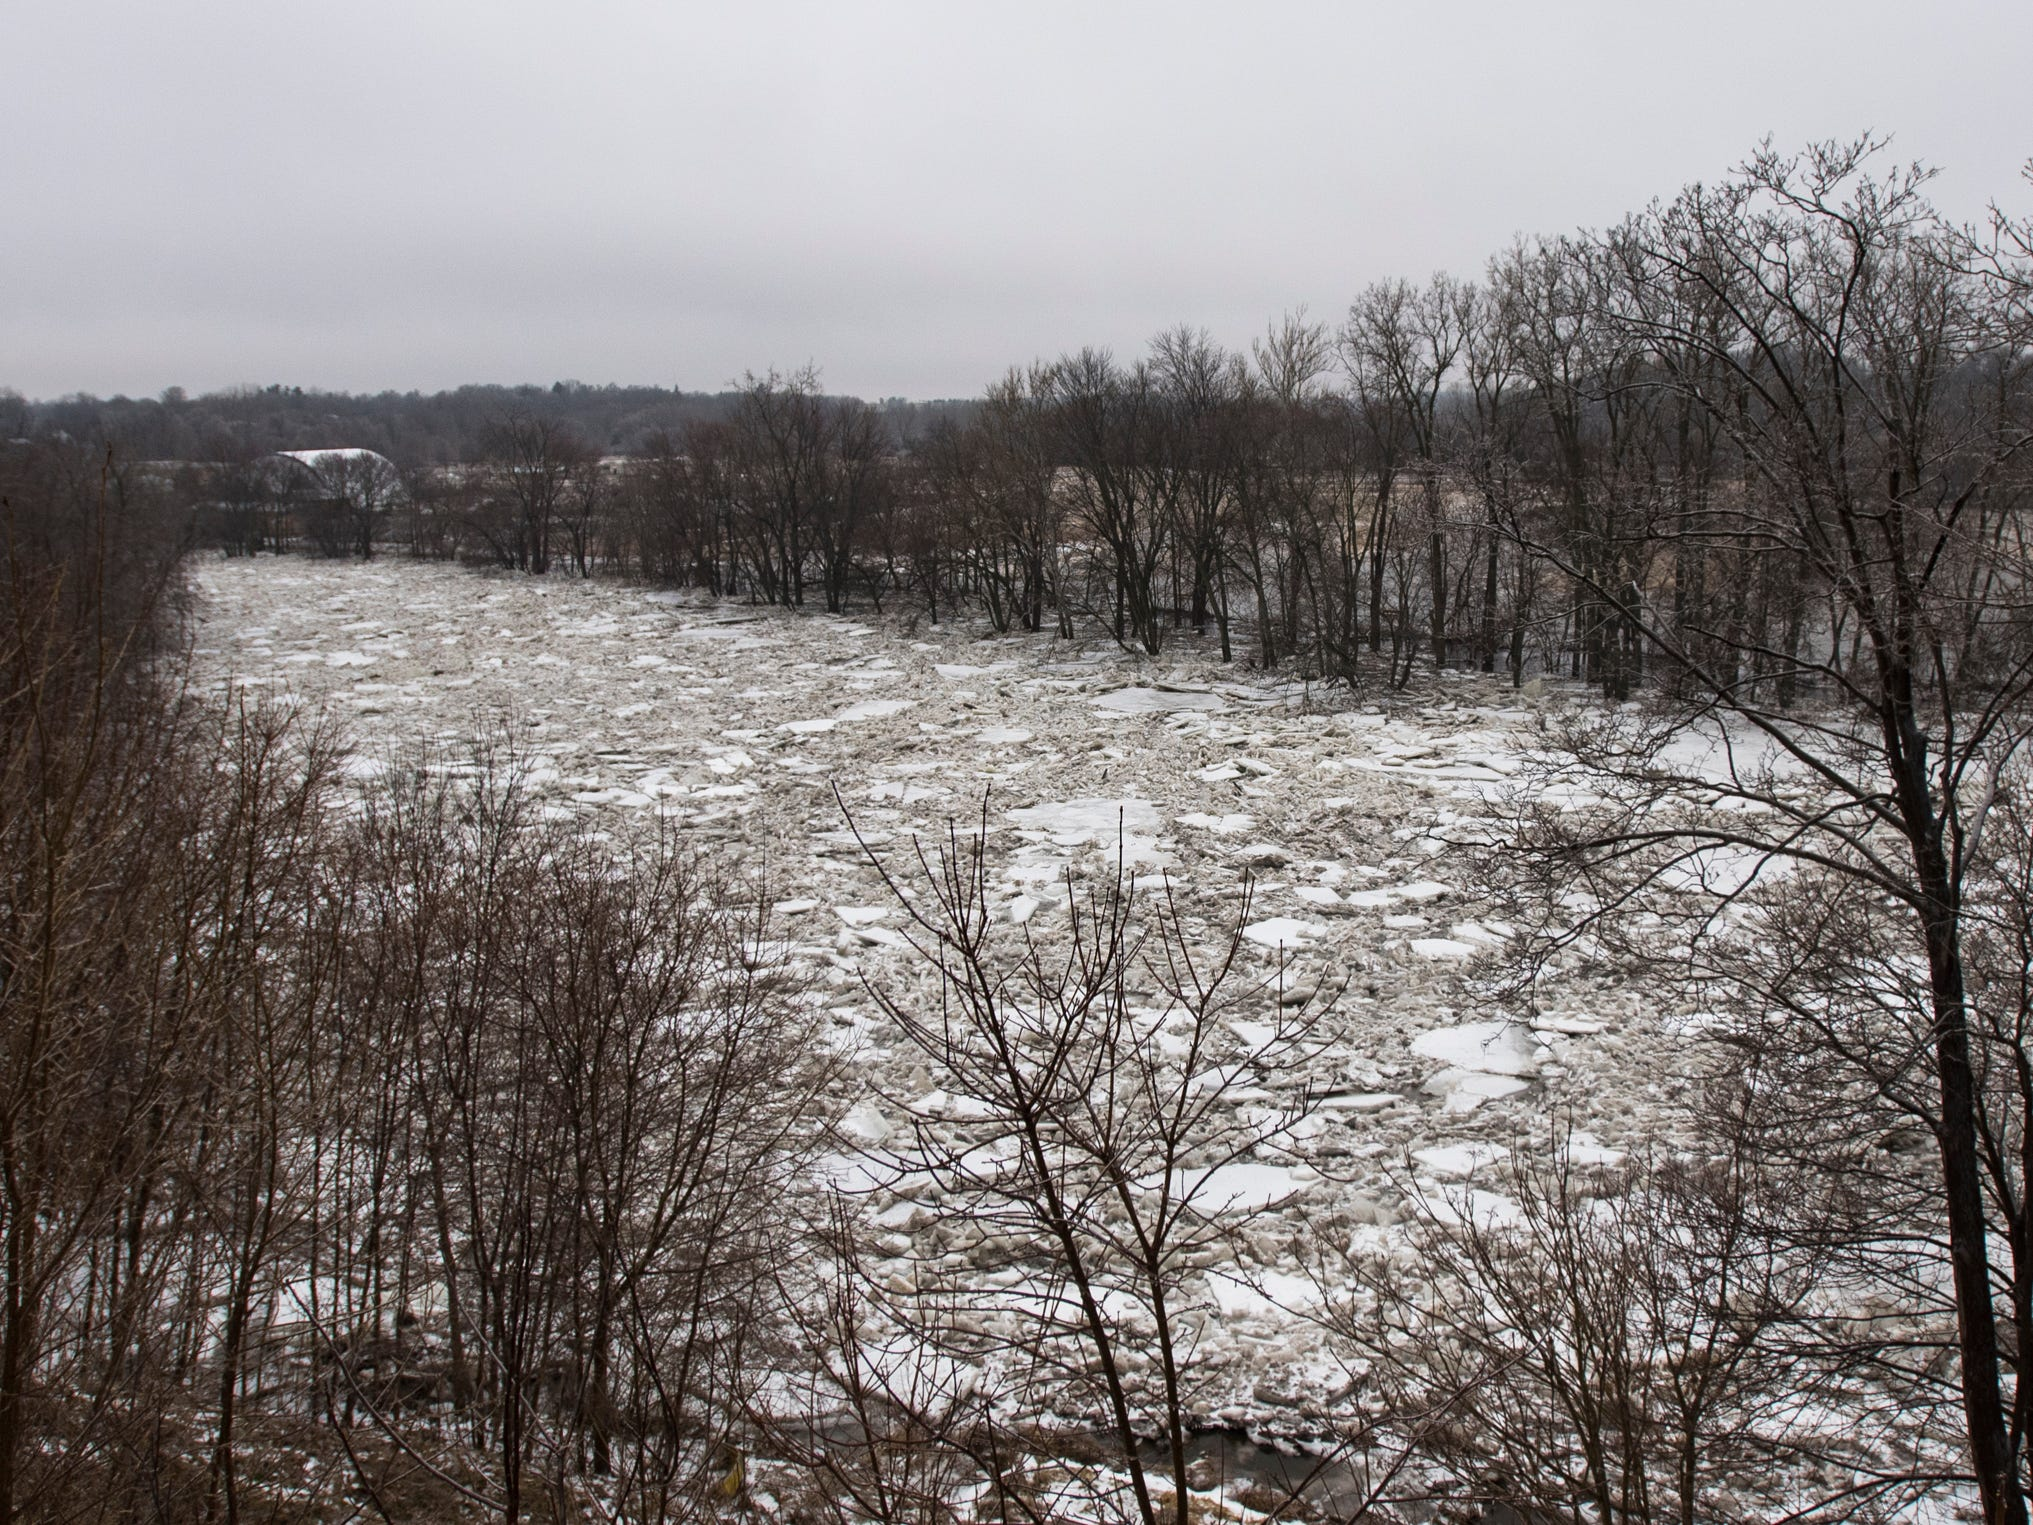 A view of the Grand River where ice jams have occurred  Portland, Michigan, Wednesday morning, Feb. 6, 2019.  About 50 people were evacuated late Tuesday evening through early Wednesday morning due to flooding along the Grand River caused by melting snow and an ice jam in the river.  [Matthew Dae Smith/Lansing State Journal]